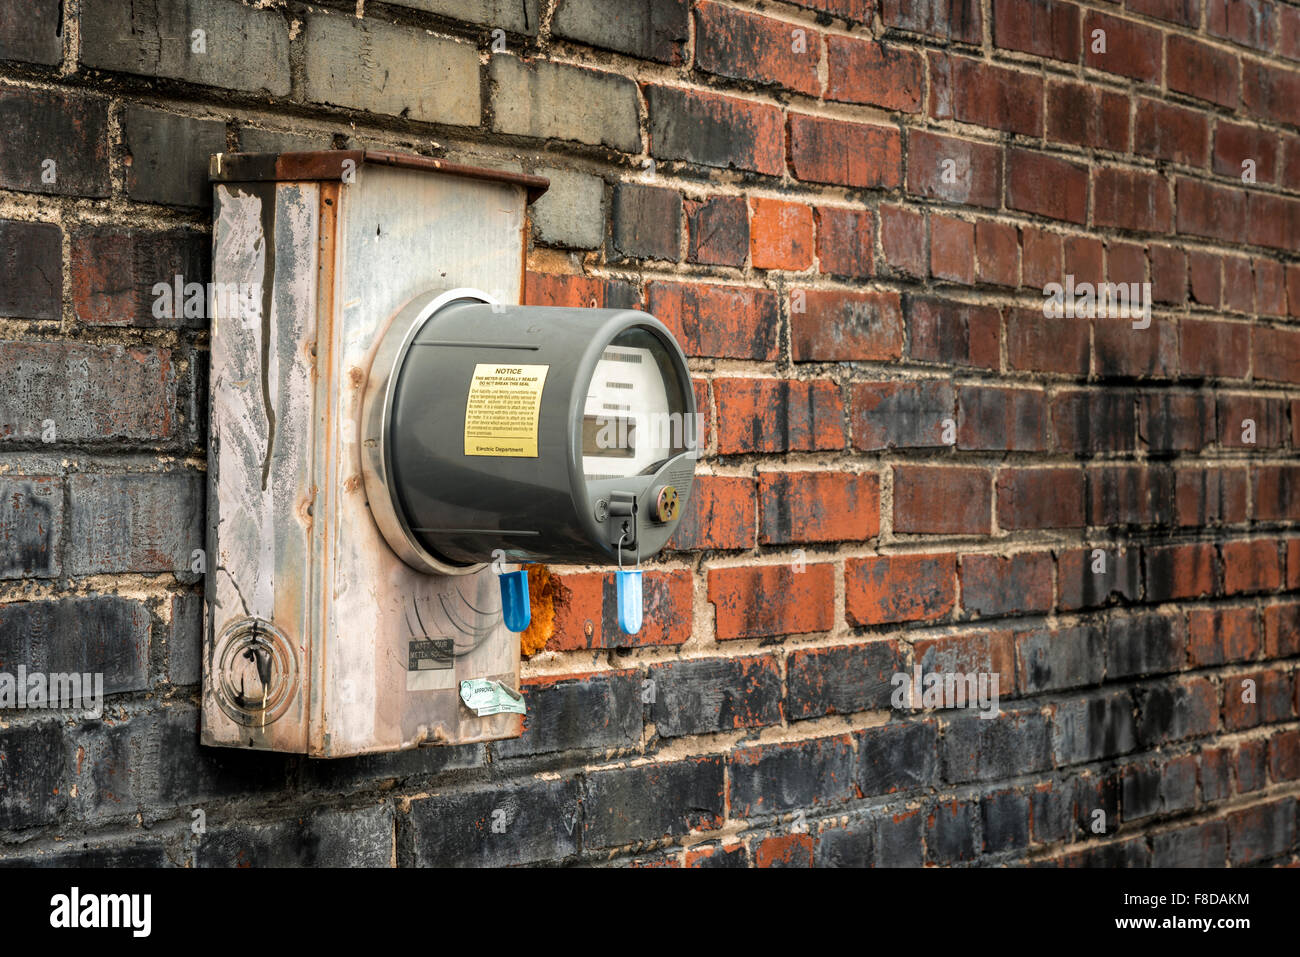 Electric Meter On Old Brick Wall of Commercial Building - Stock Image